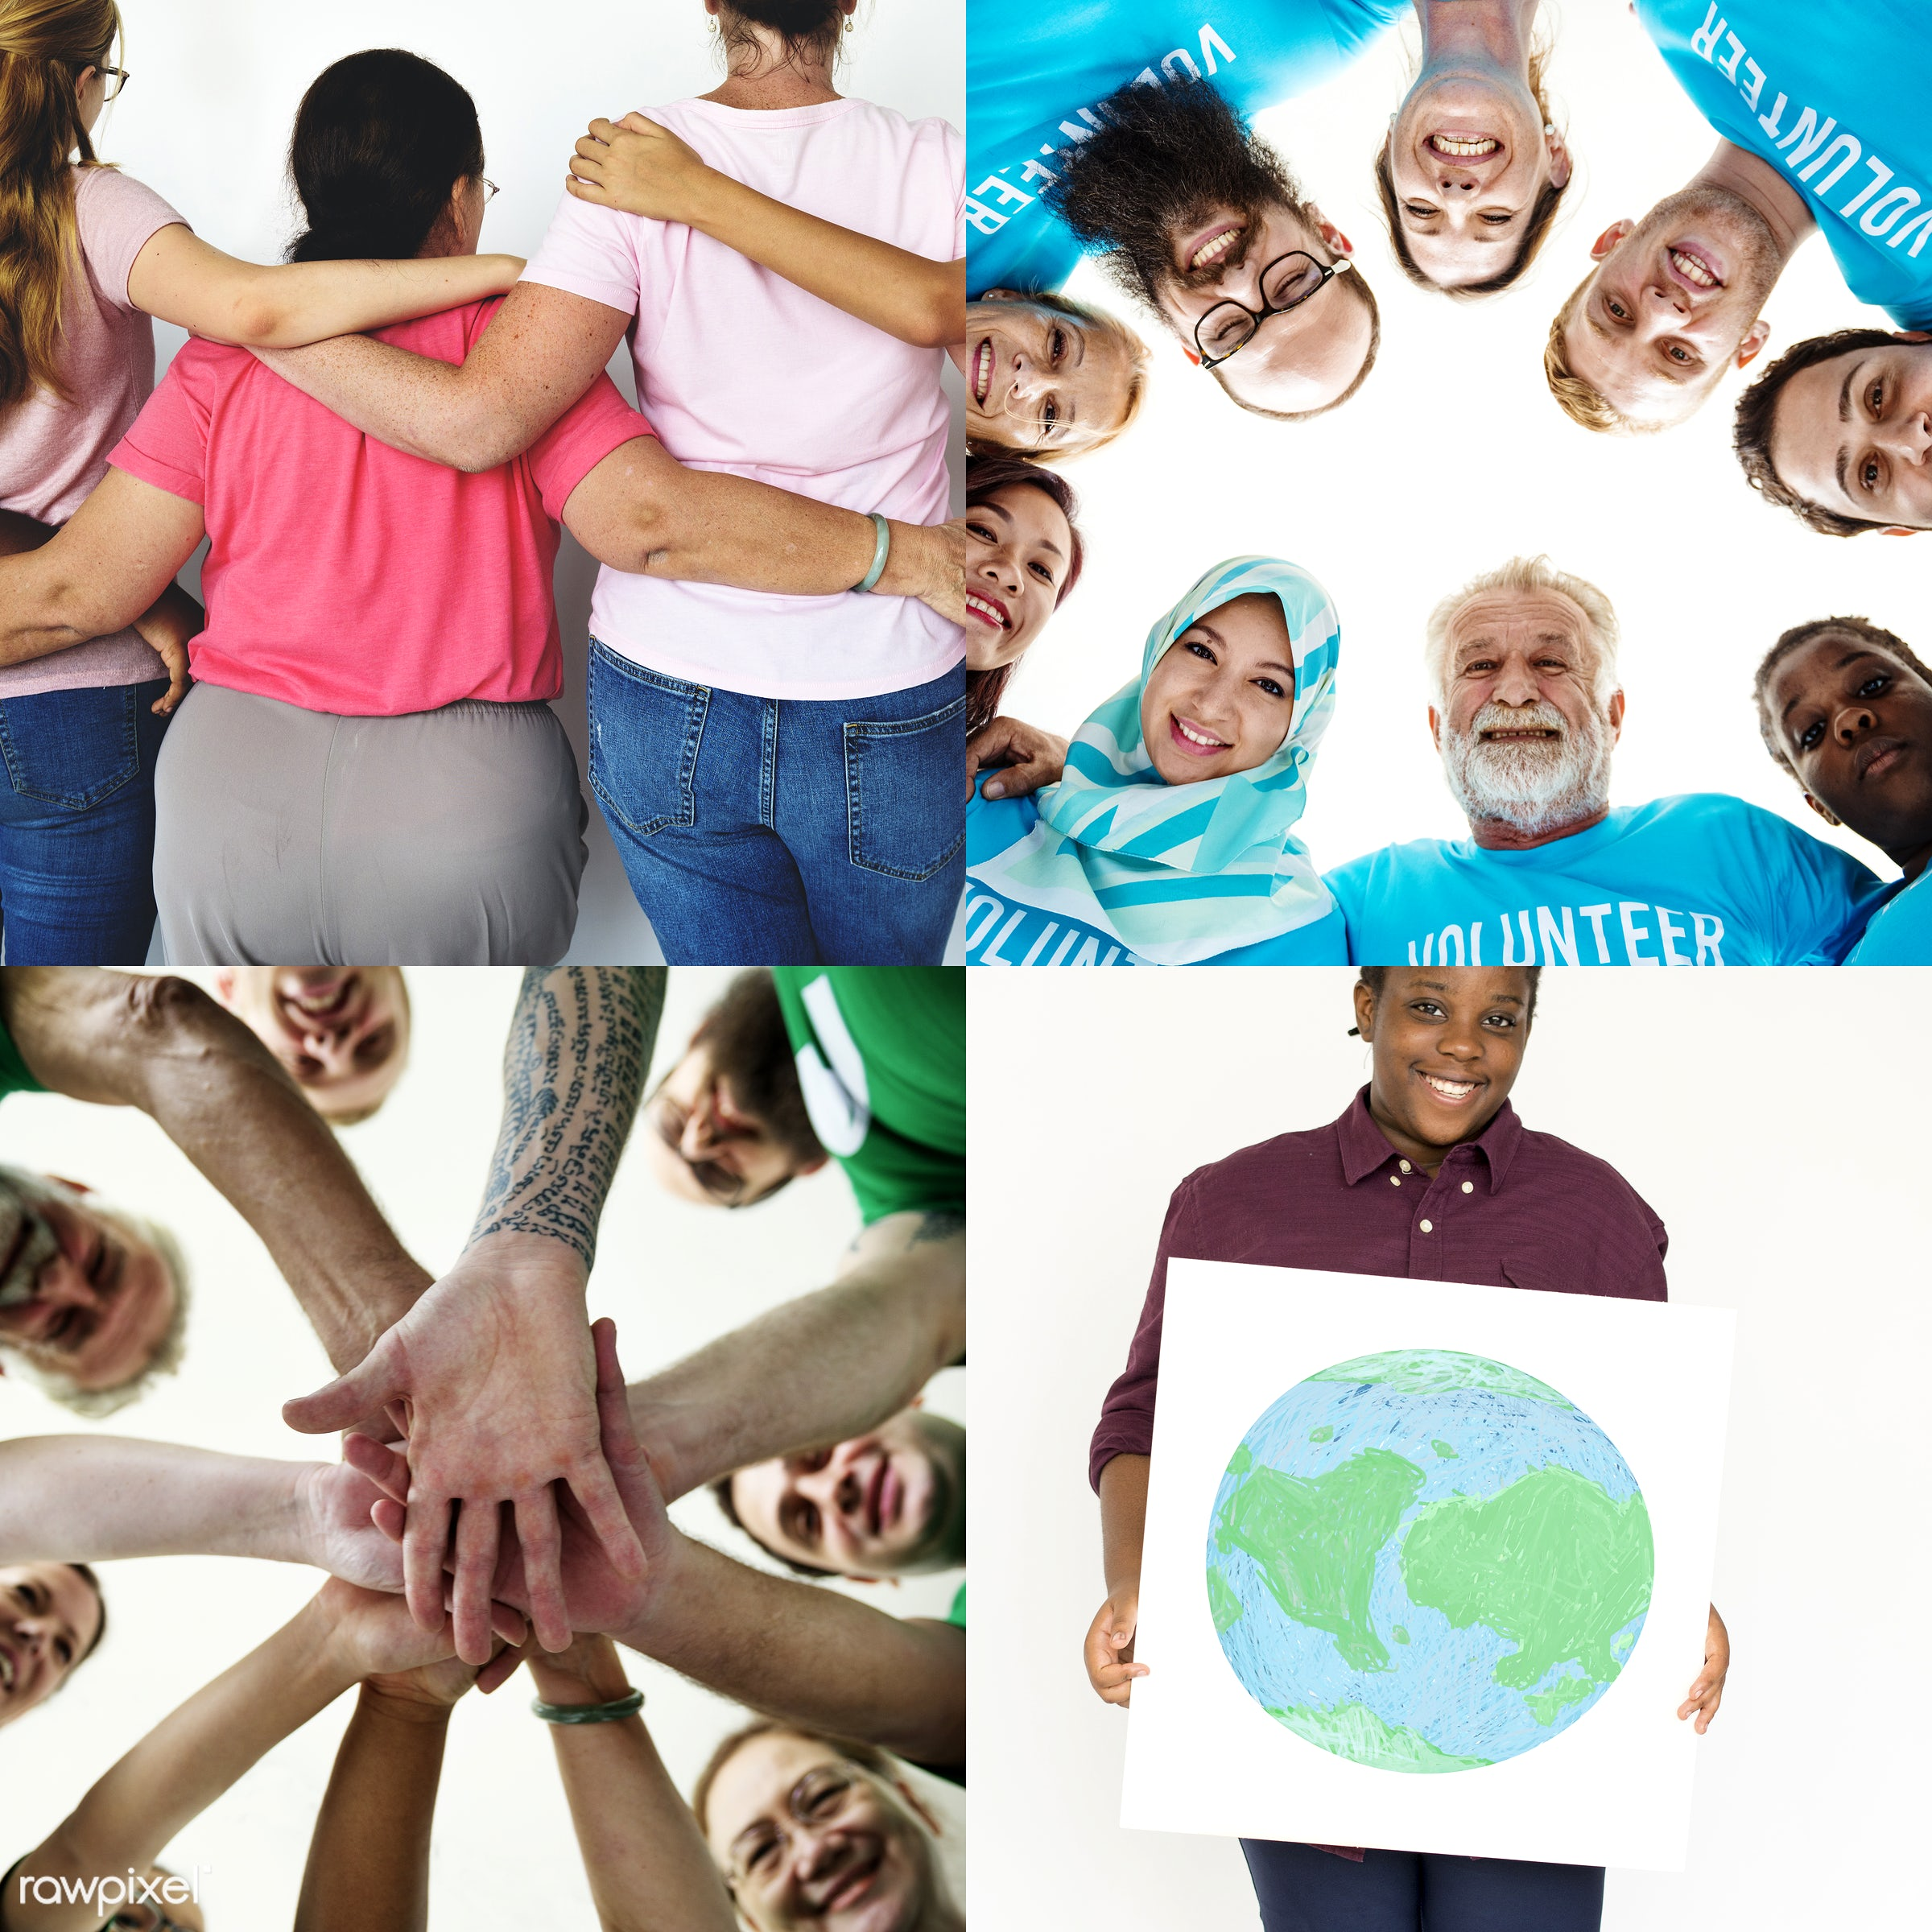 humanity, person, community service, people, together, help, teamwork, fundraising, cooperation, donate, fund, grantor,...